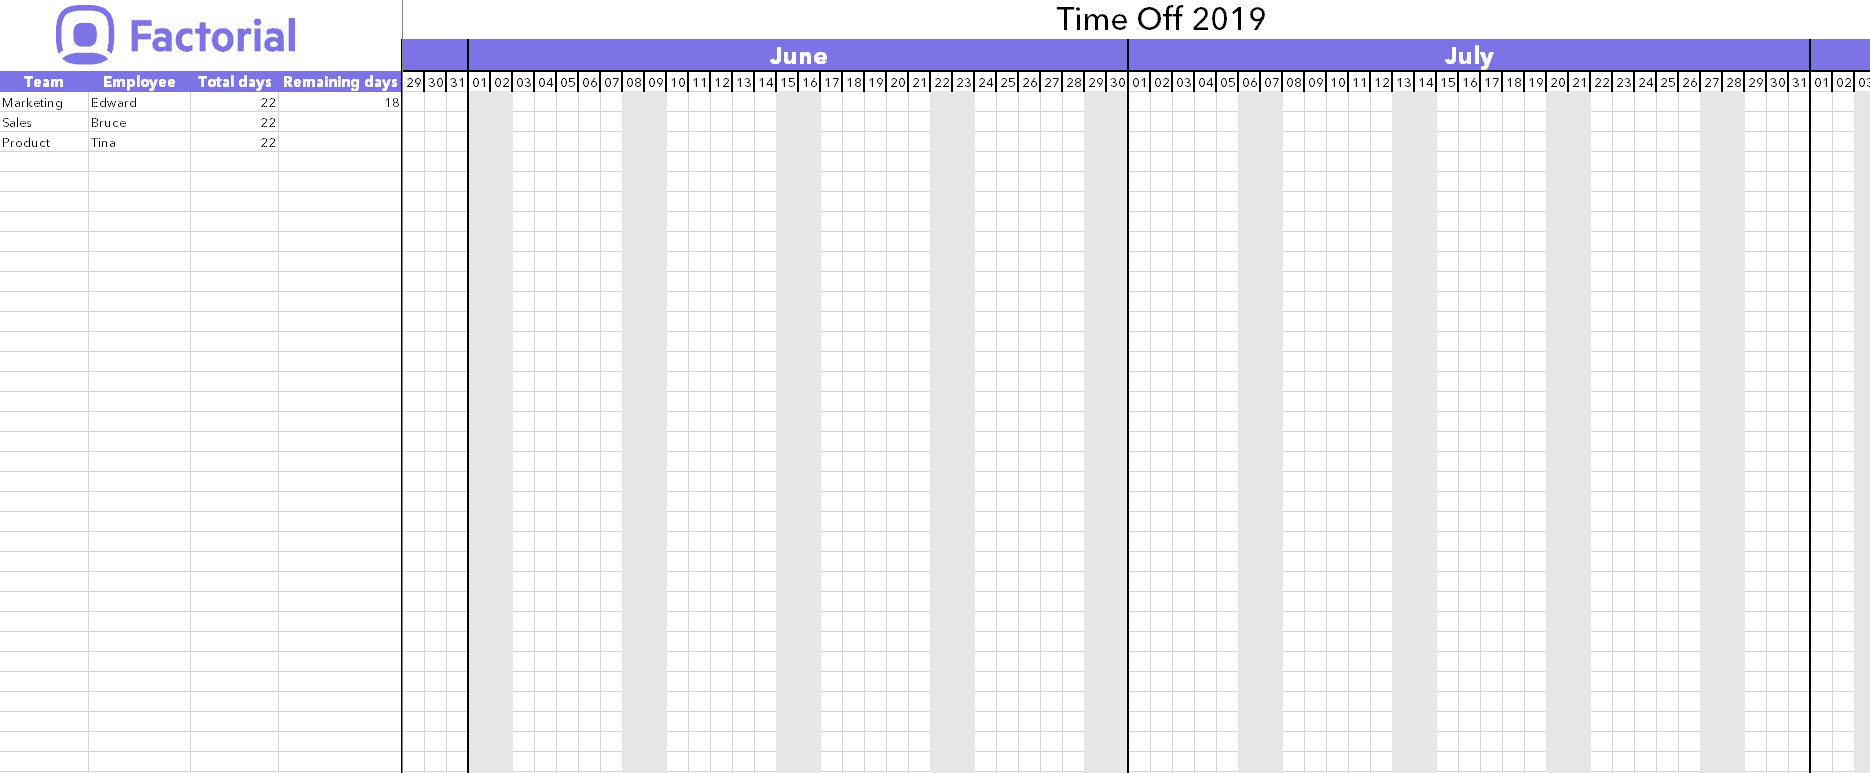 Employee Attendance Tracker Excel Template 2019 from factorialhr.co.uk